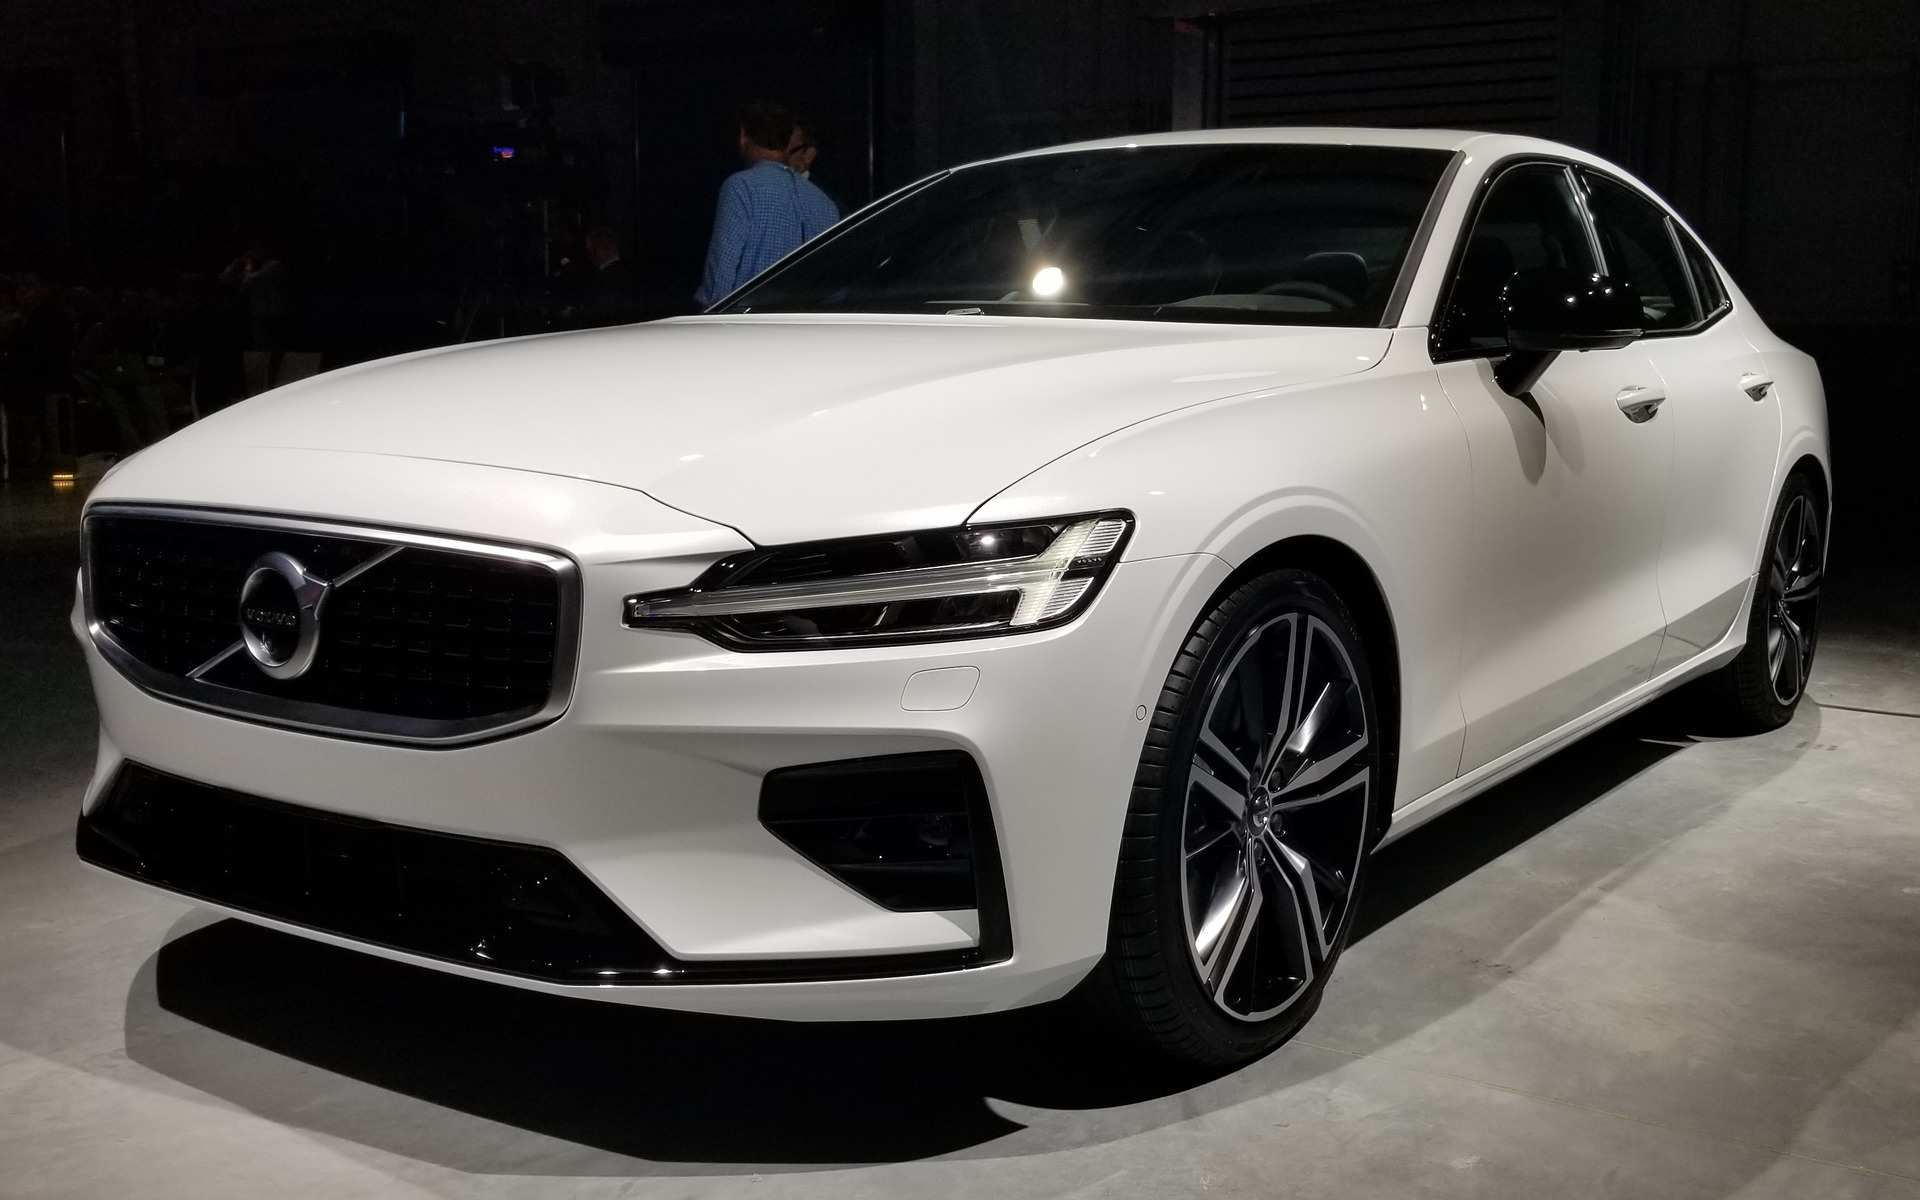 73 All New S60 Volvo 2019 Picture with S60 Volvo 2019